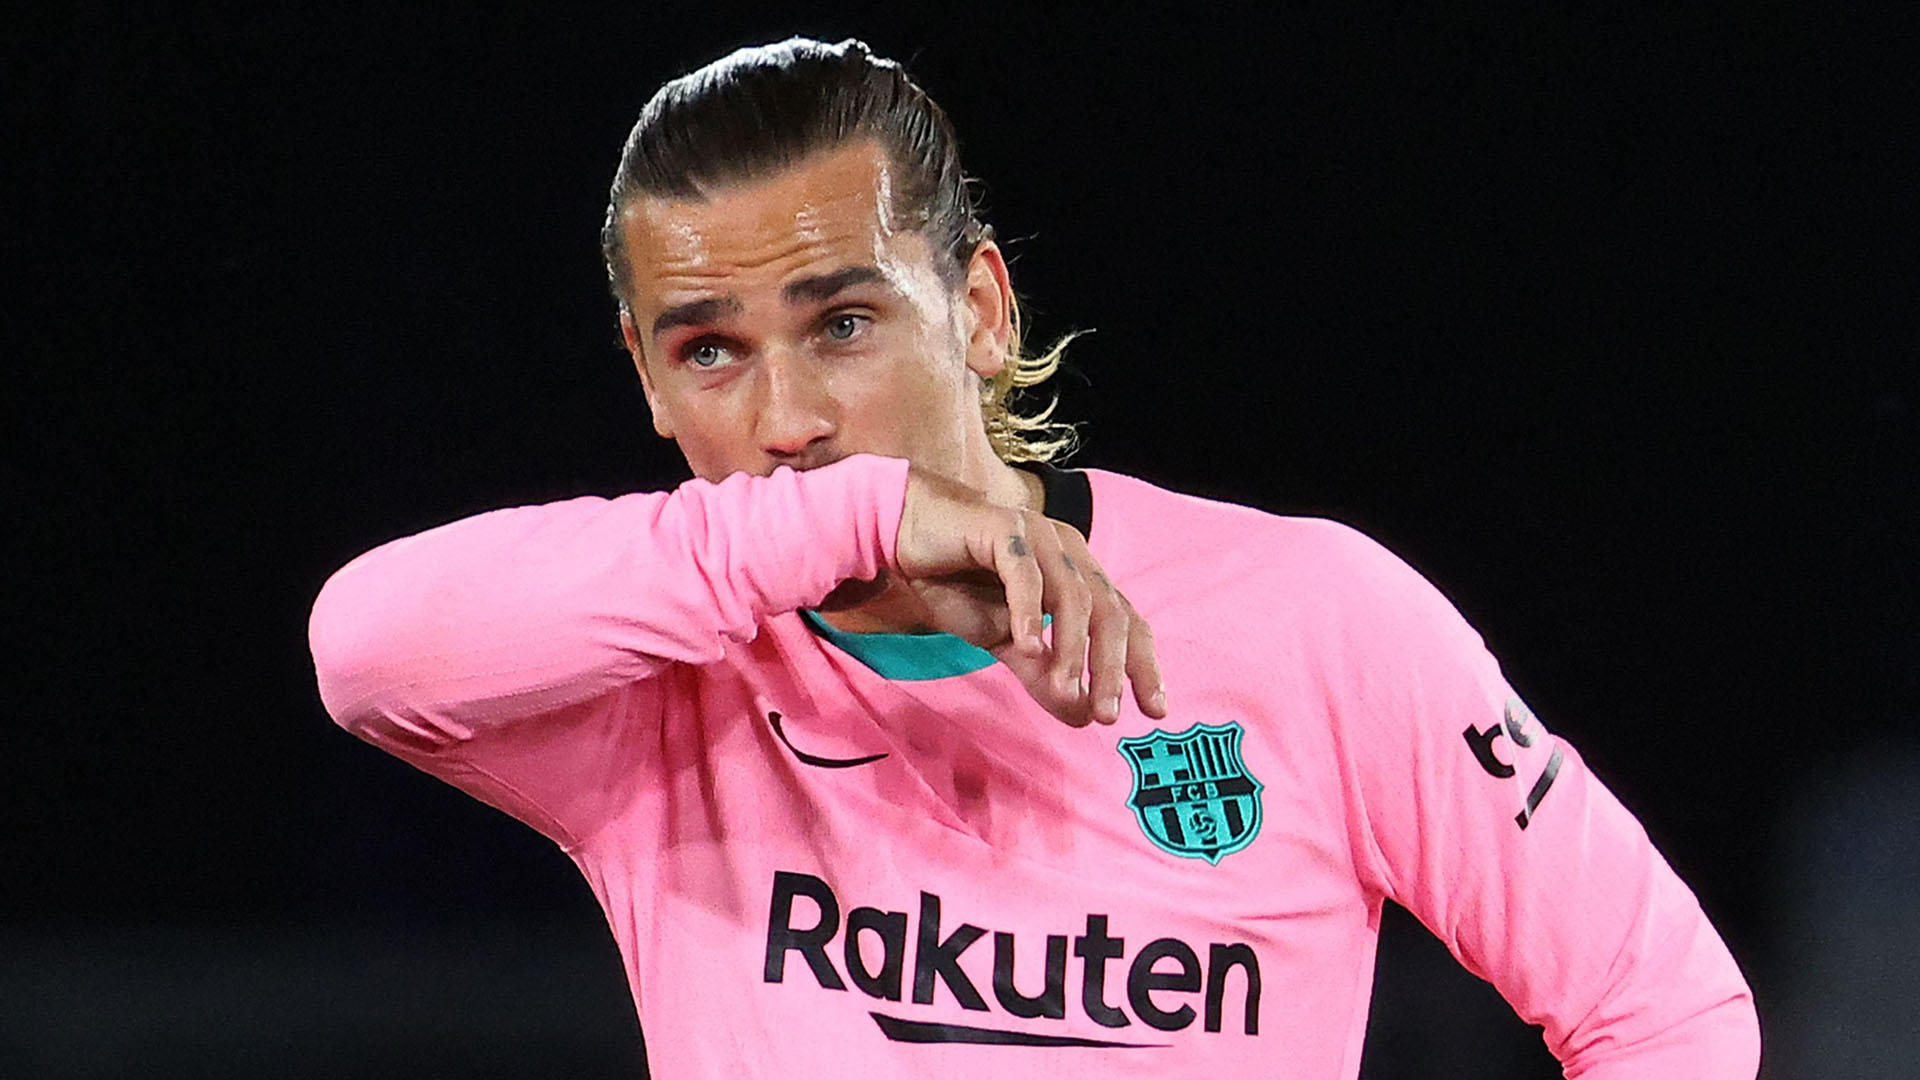 Griezmann remains interested in MLS after contract with Barcelona expires